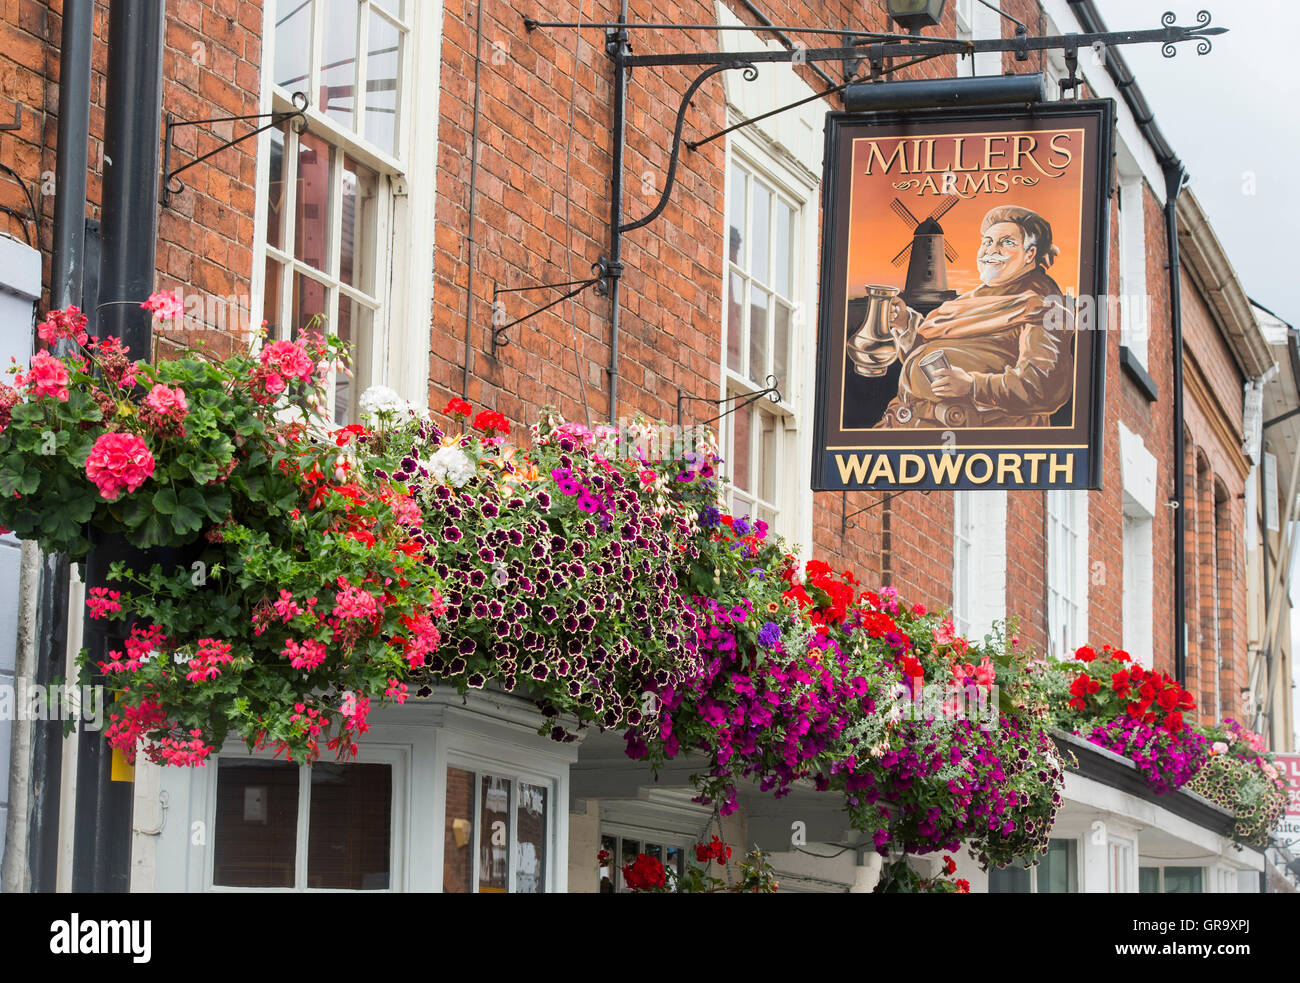 Hanging baskets of flowers on Millars arms pub in the town of Pershore, Worcestershire, UK - Stock Image